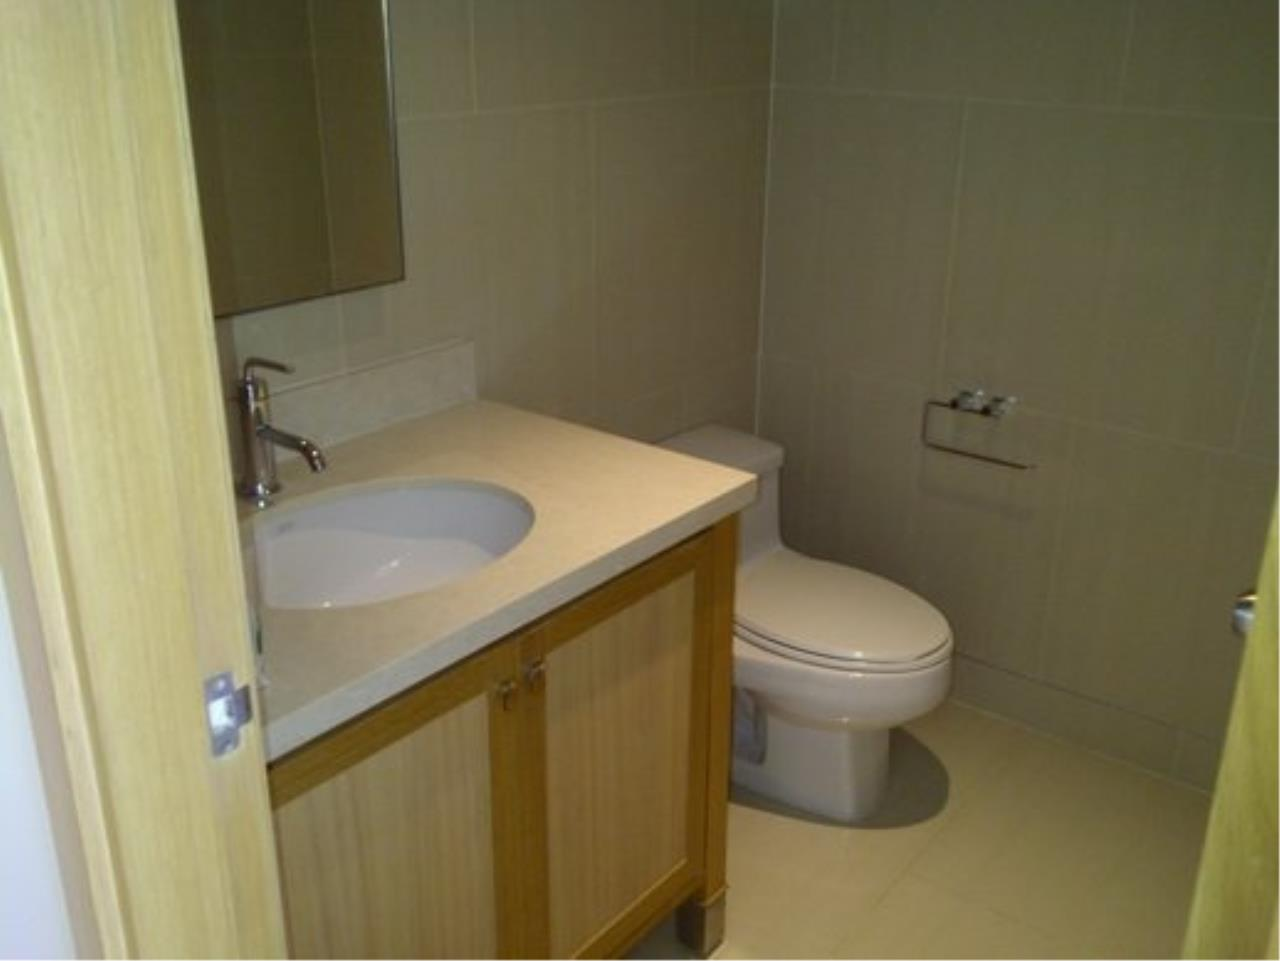 Piri Property Agency's Duplex 1 Bedroom Condo in the Emporio Place building for rent on high floor 12